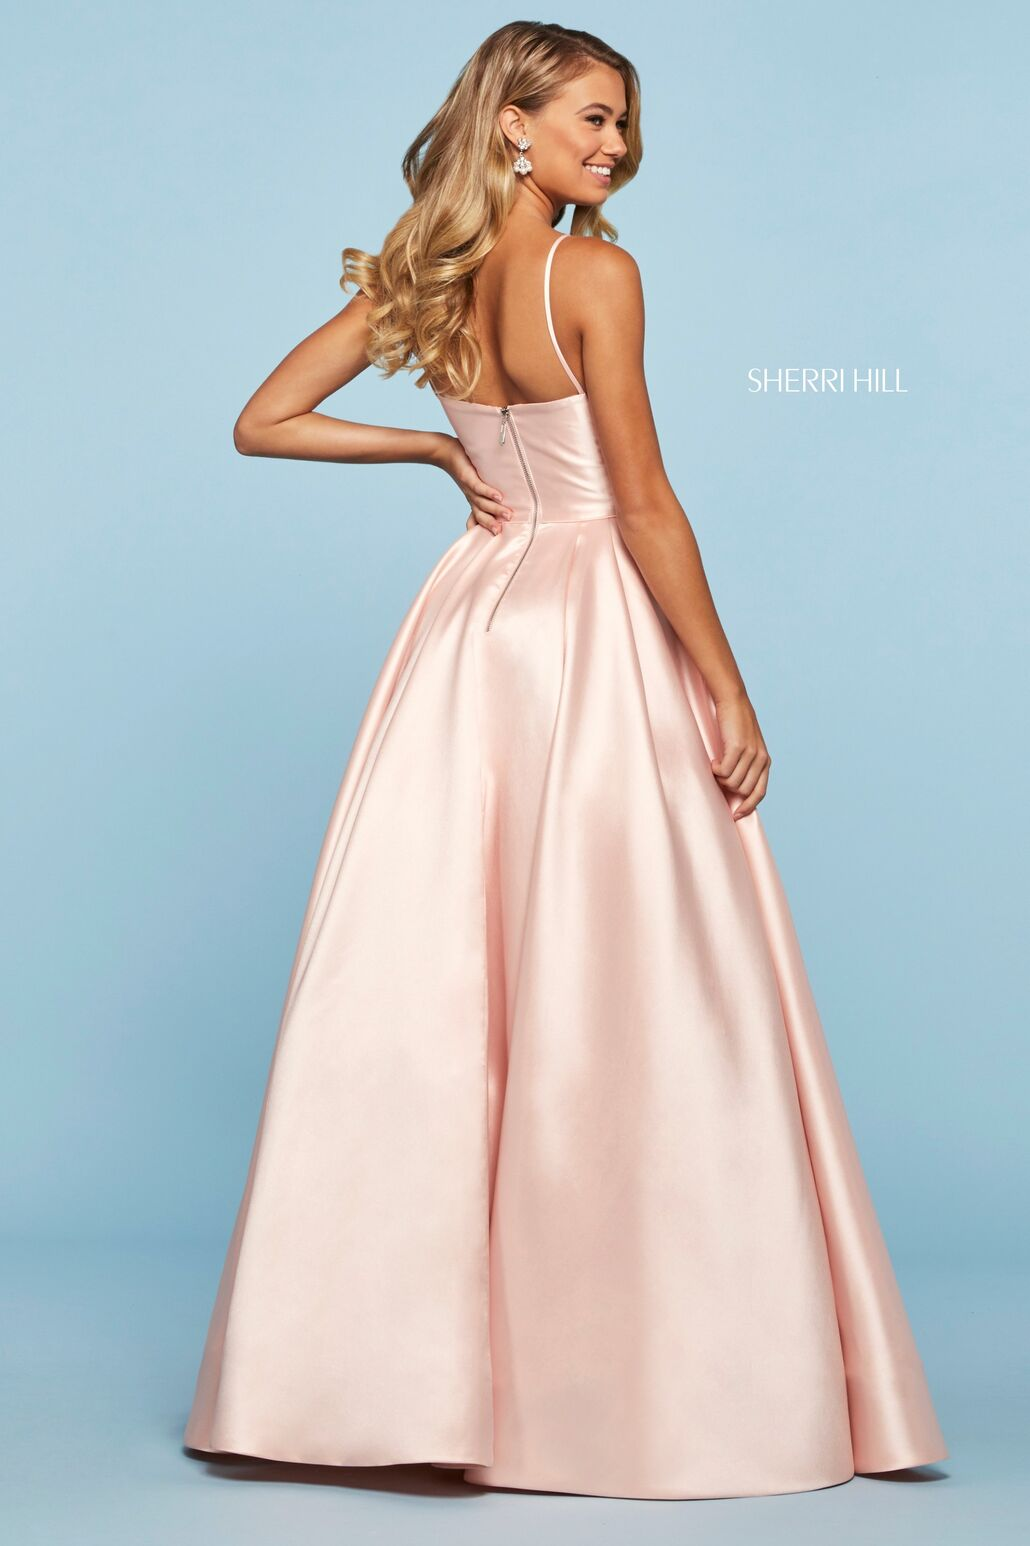 SHERRI HILL PROM DRESS #53407